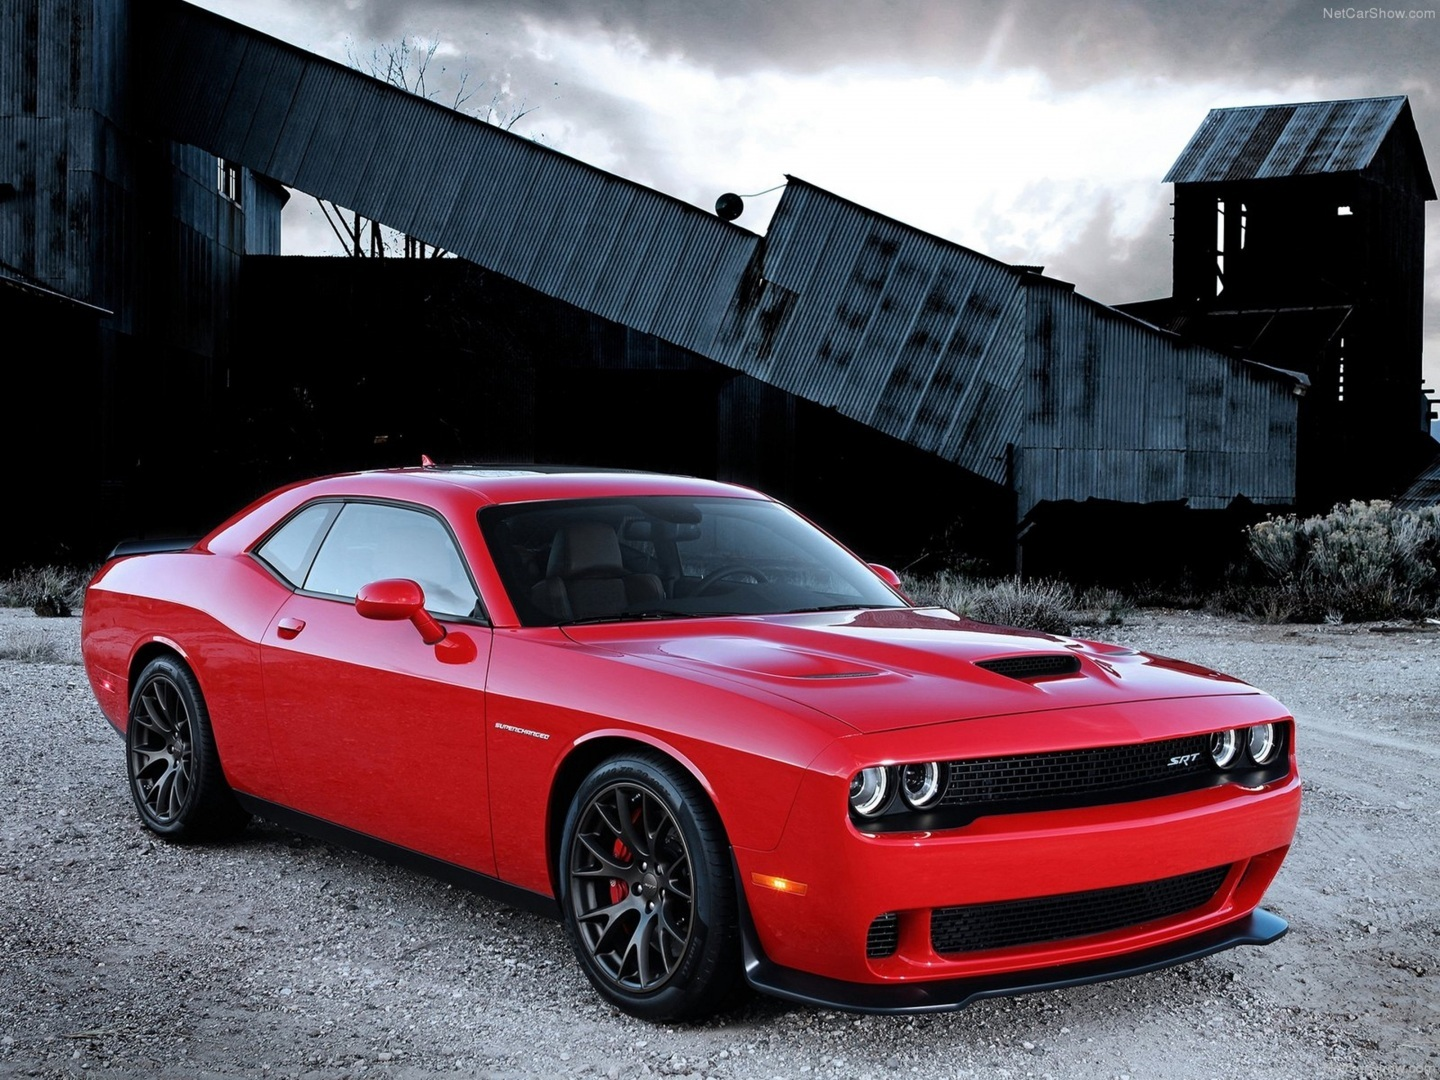 Photo Dodge Challenger Hellcat Wallpaper Iphone For Iphone 1440x1080